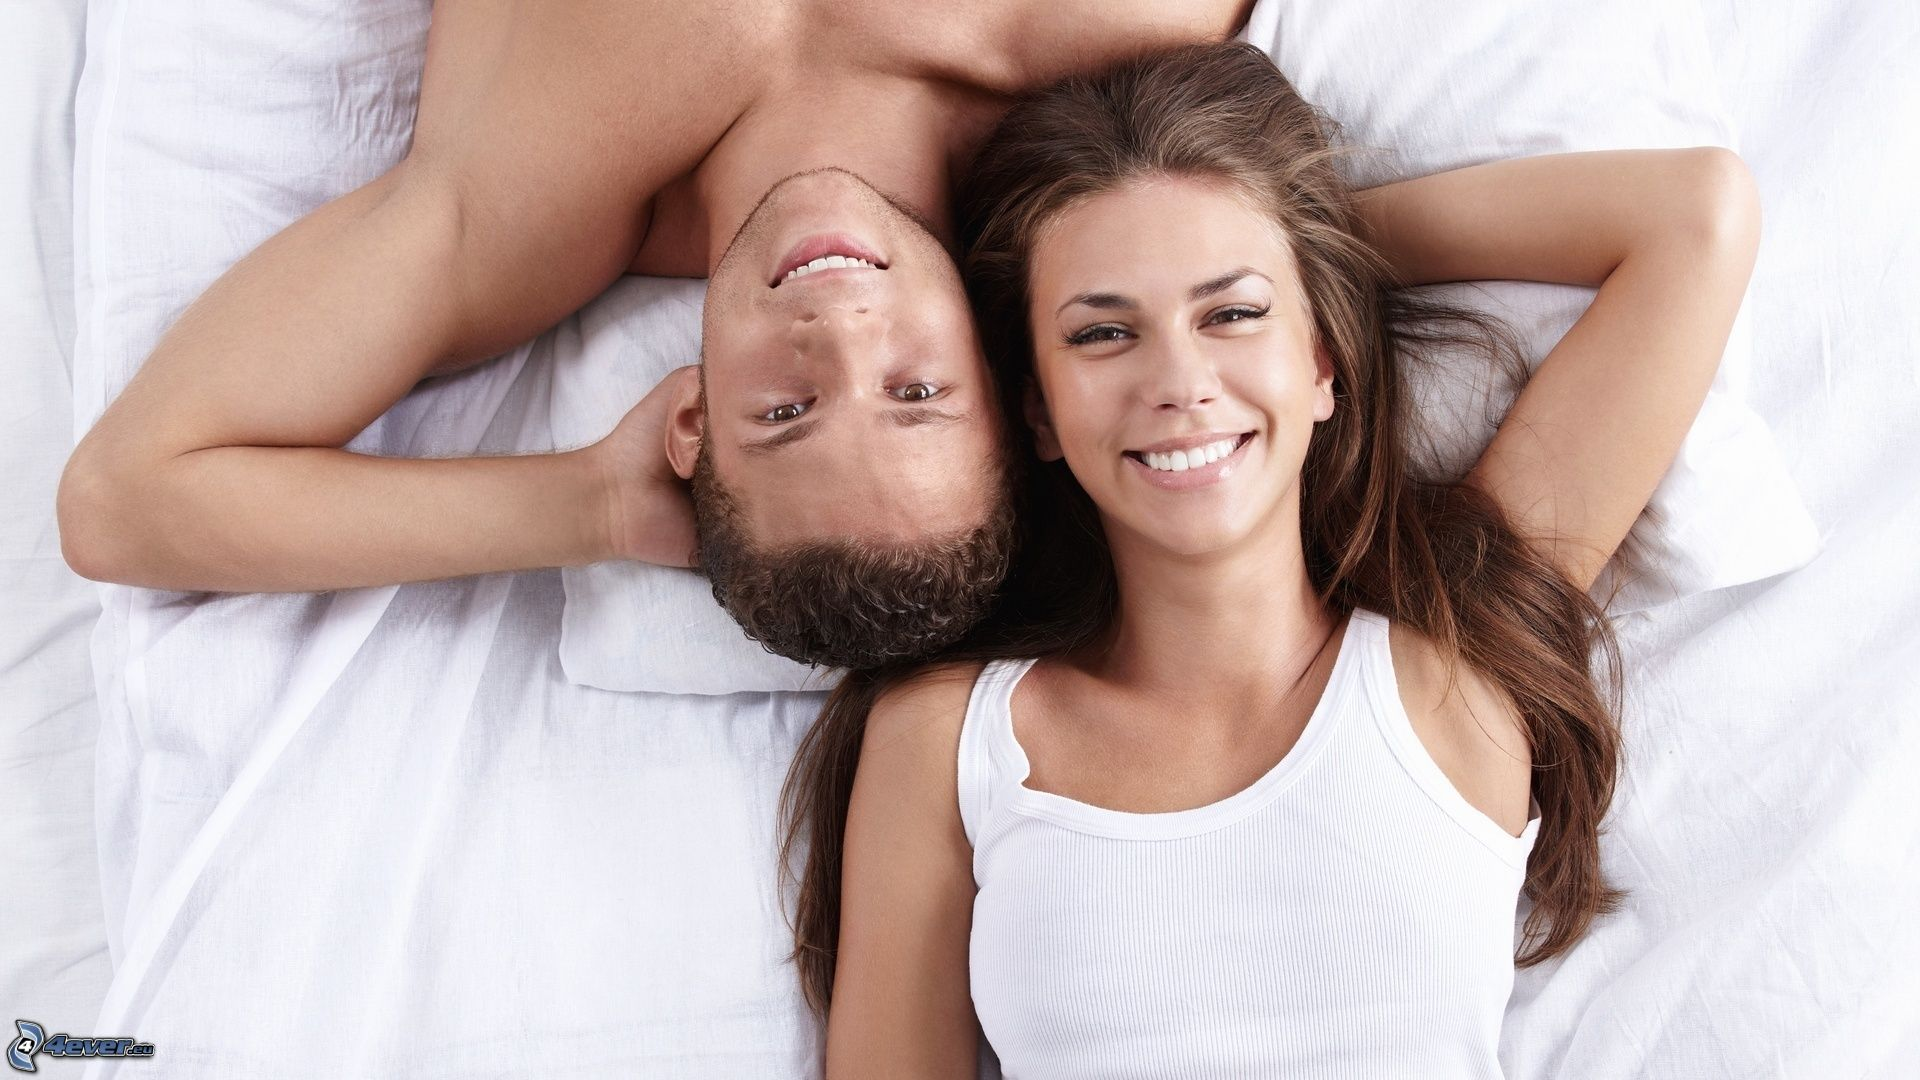 couple-on-bed-159679